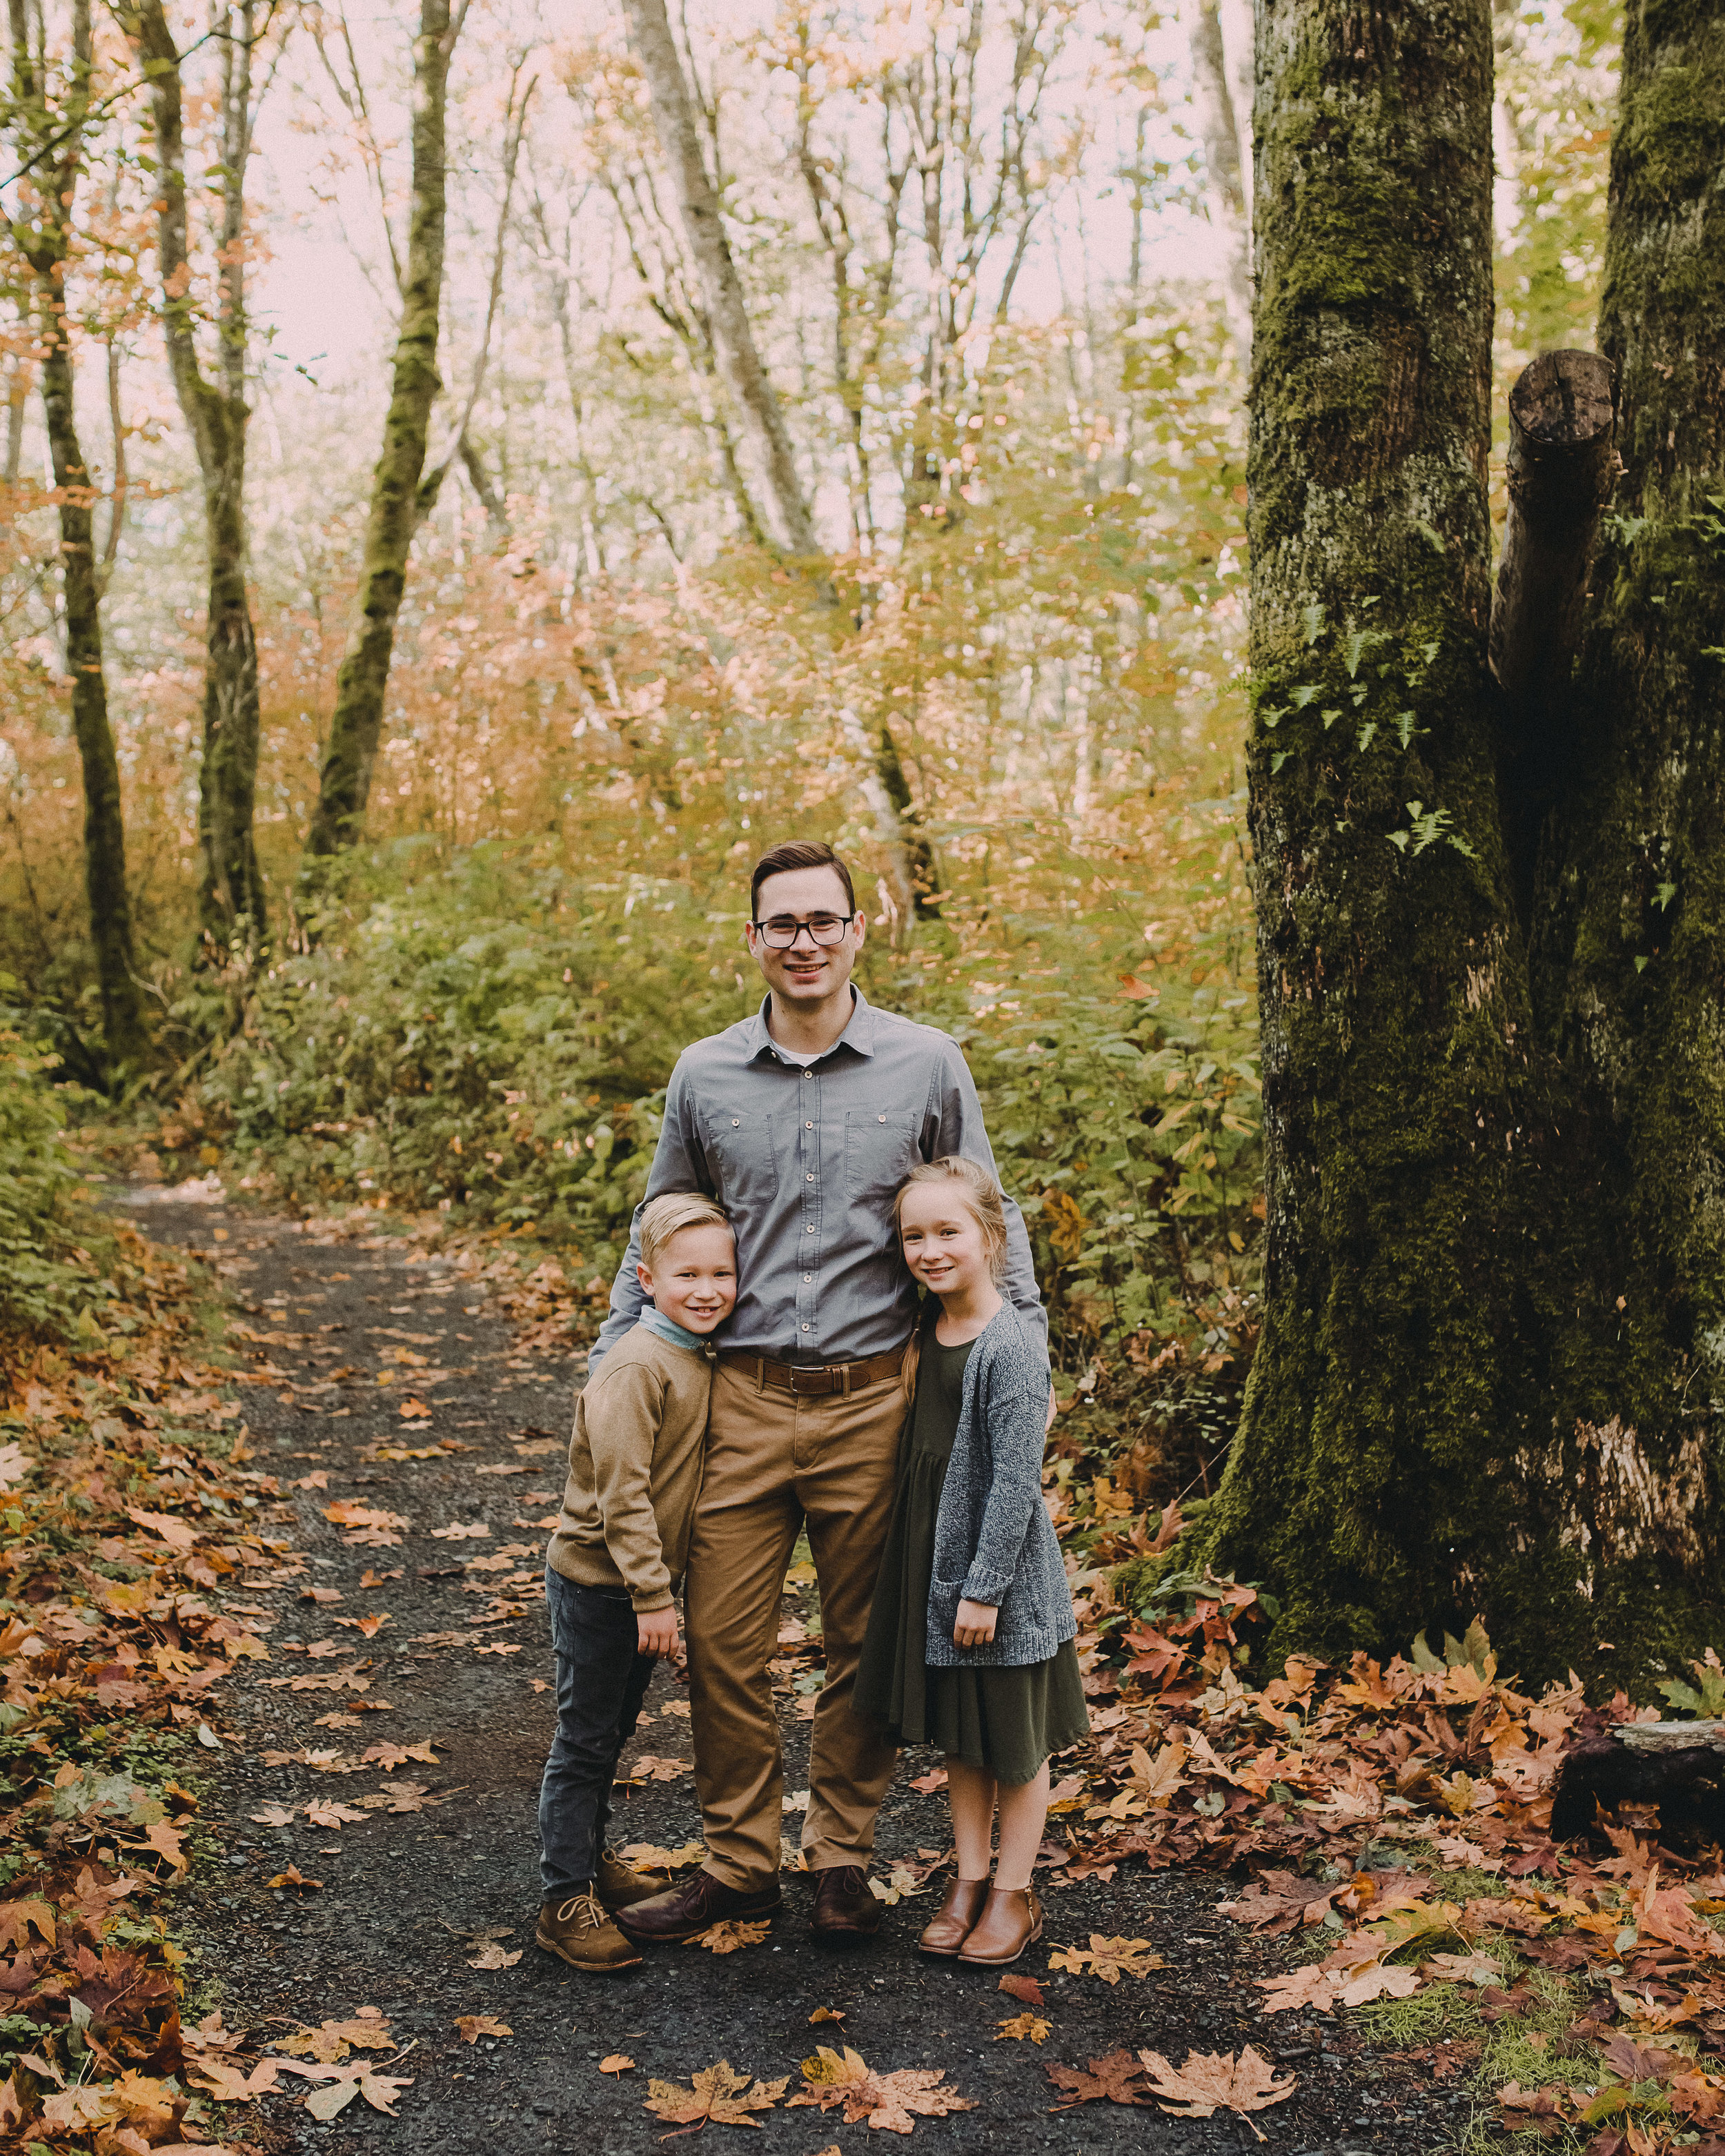 16Family-Photographer-Bellingham-WA-Brianne-Bell-Photography-(Kaiser).jpg